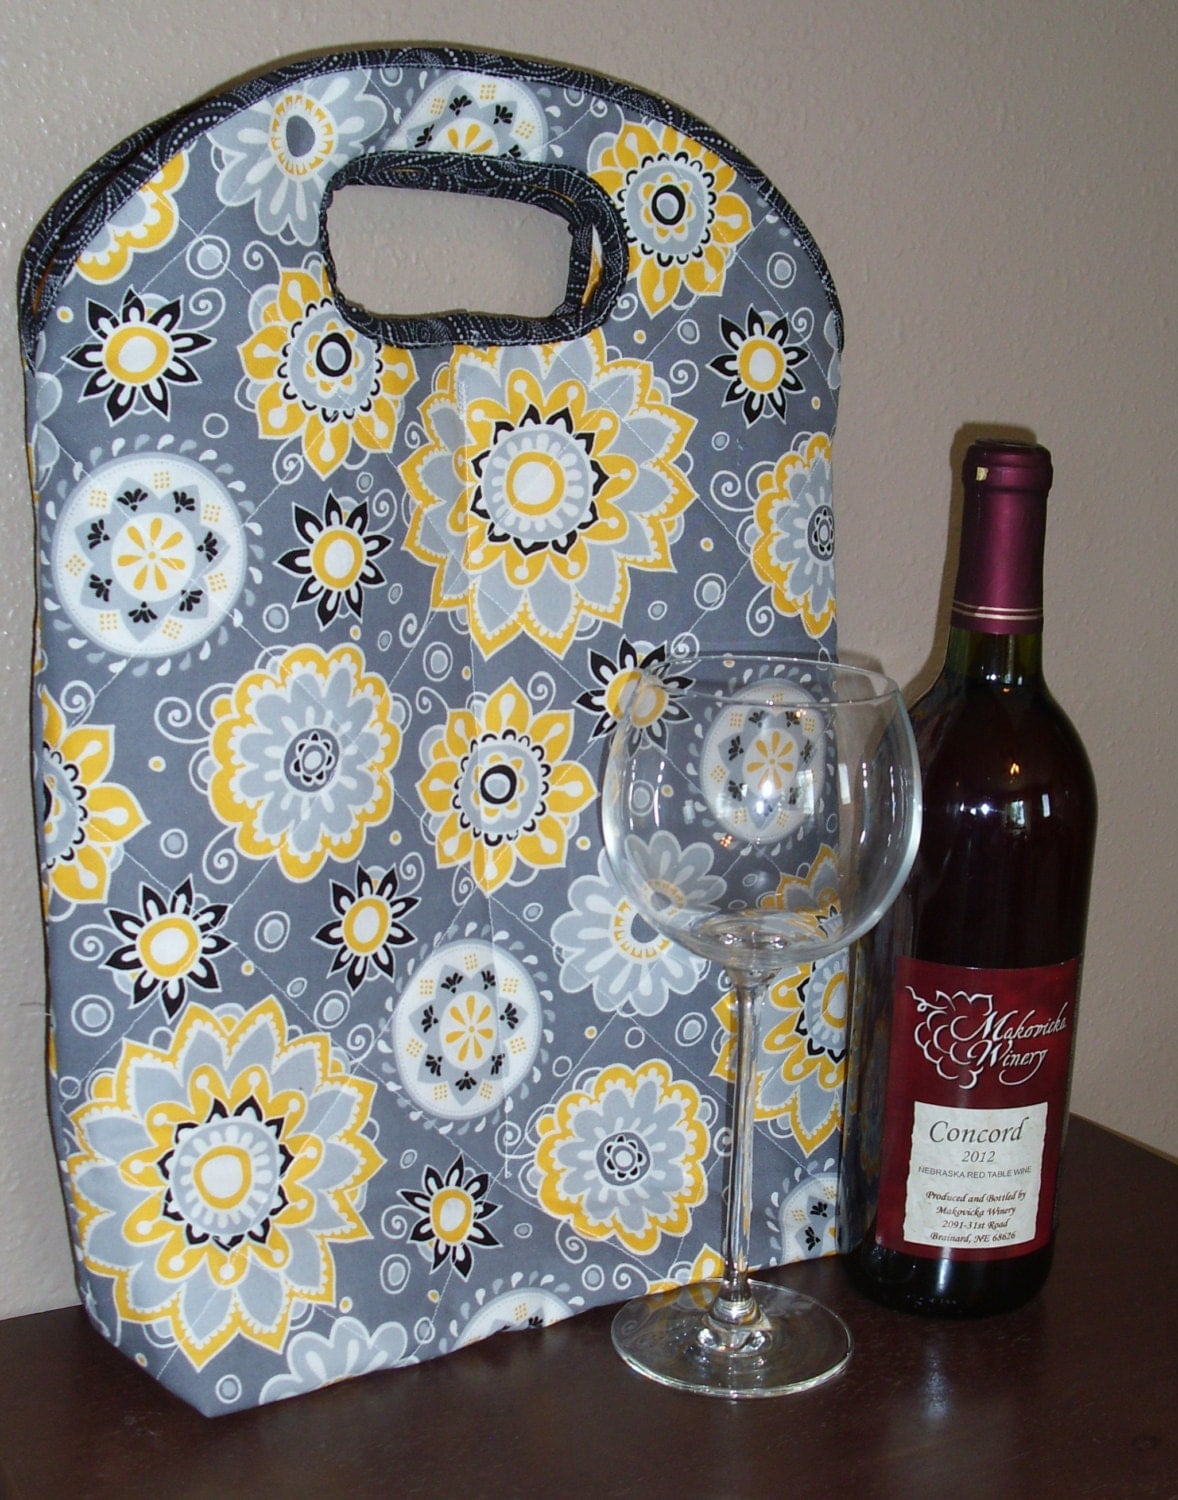 Quilted wine tote bag in sunflower print by JanomeSewWell on Etsy